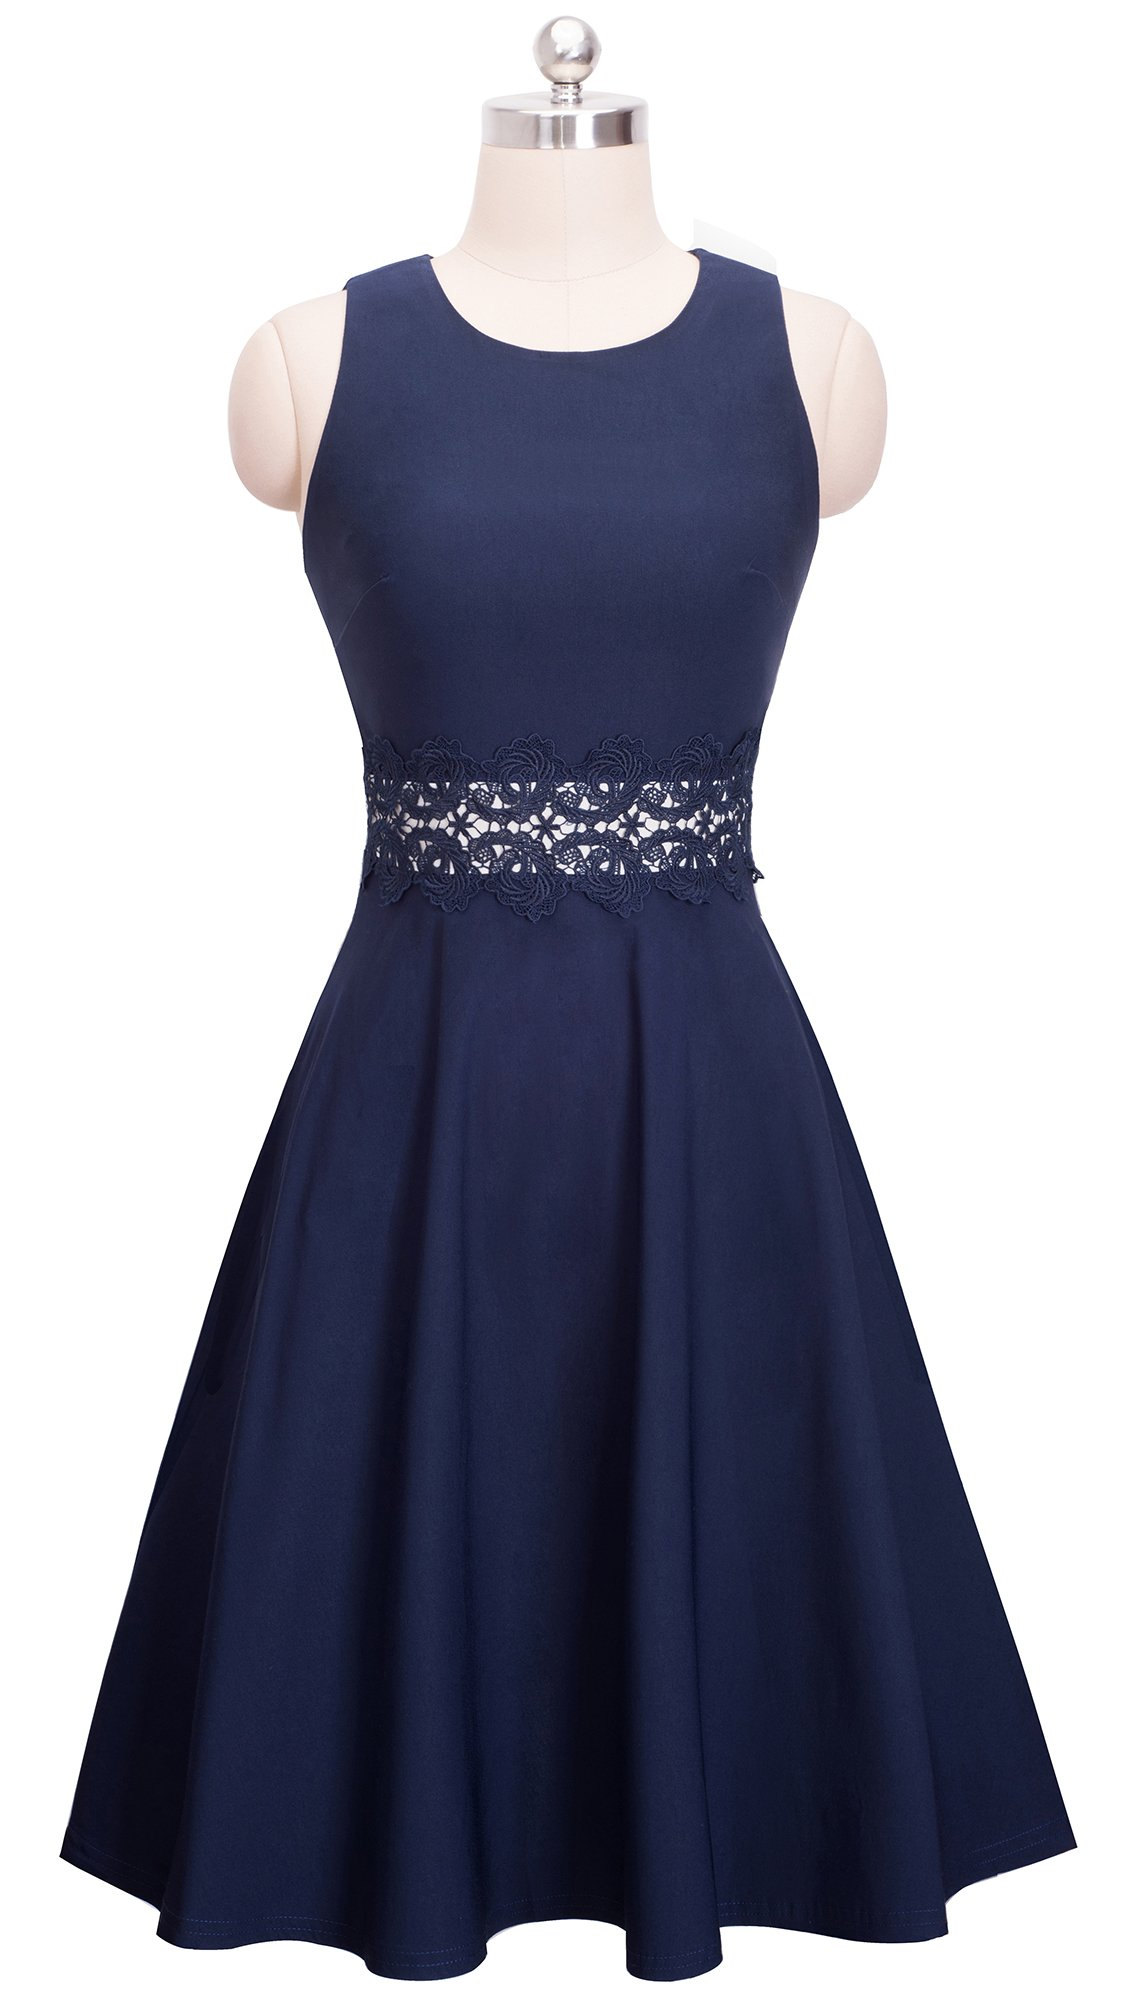 HOMEYEE Women's Sleeveless Cocktail A-Line Embroidery Party Summer Dress A079 (8, Dark Blue) by HOMEYEE (Image #2)